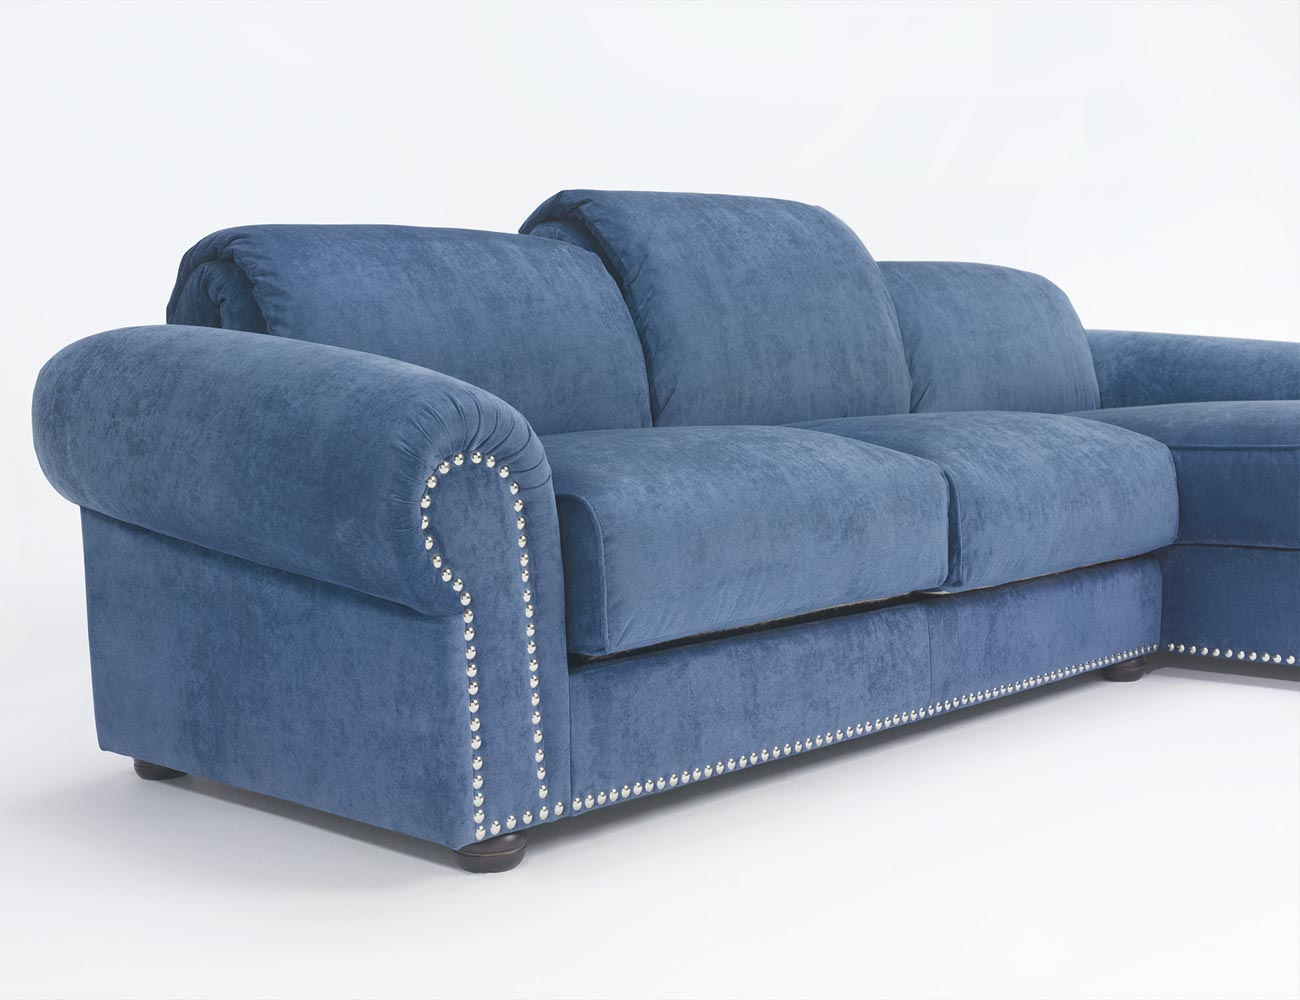 Sofa chaiselongue gran lujo decorativo azul 13